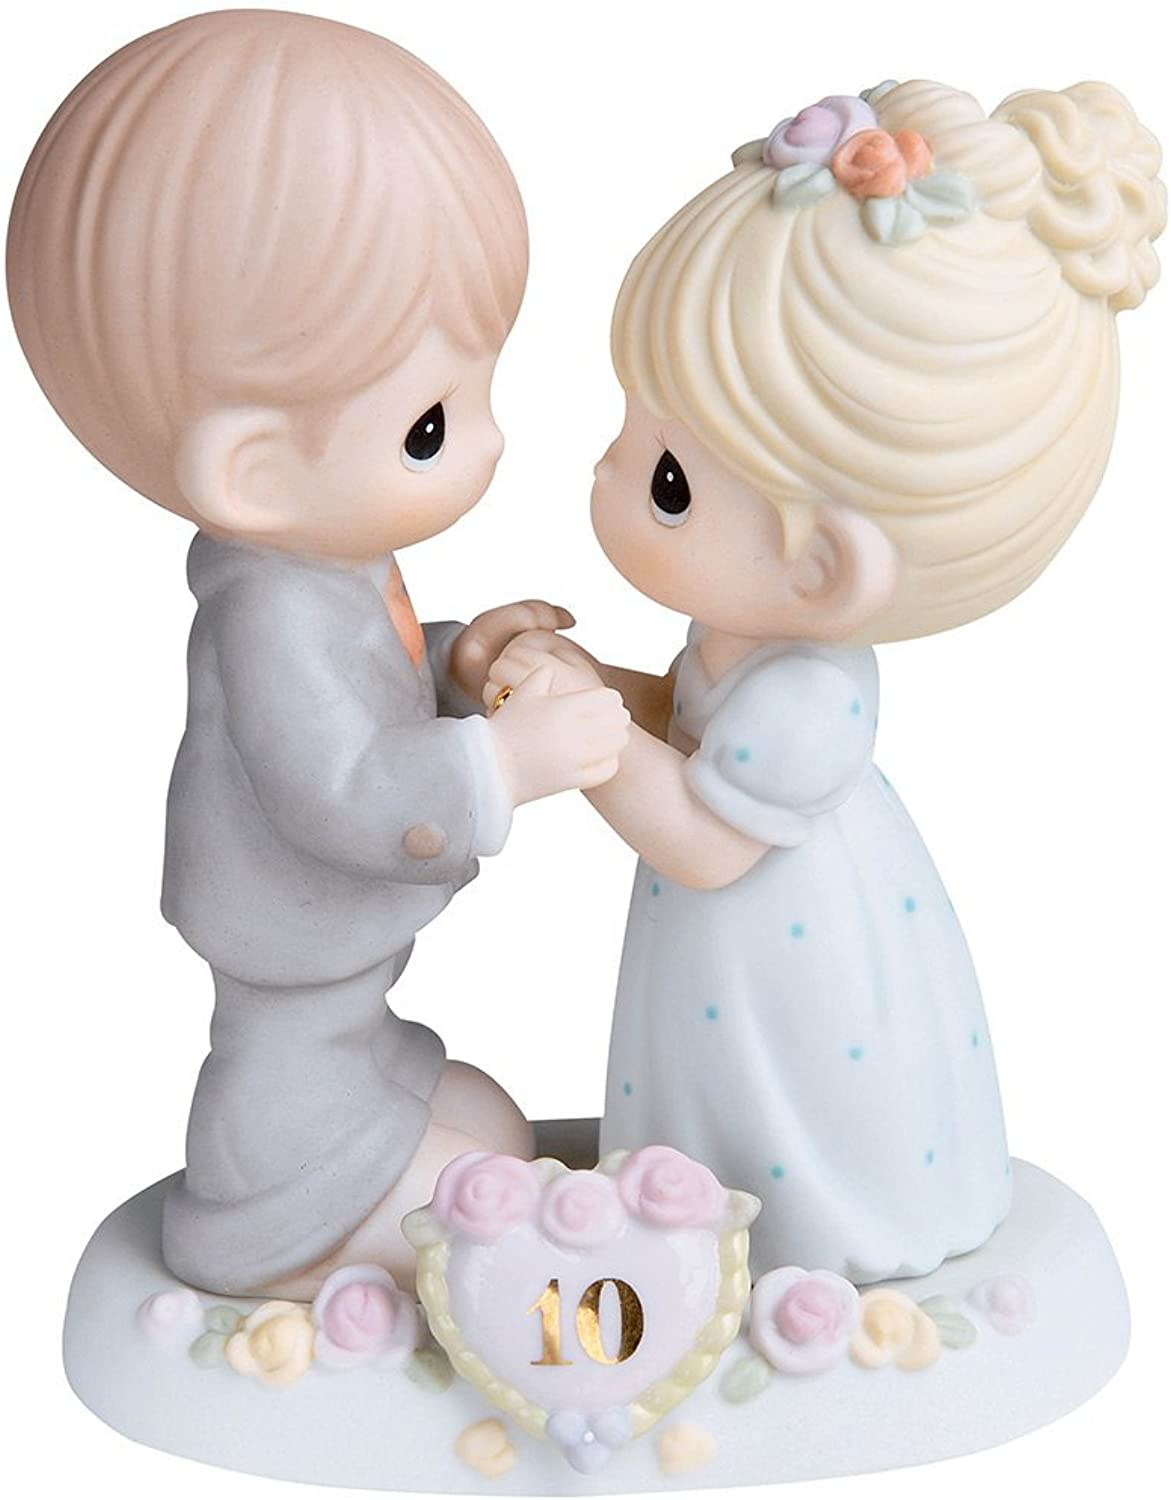 Precious Moments,  A Decade Of Dreams Come True - 10th Anniversary, Bisque Porcelain Figurine, 730007